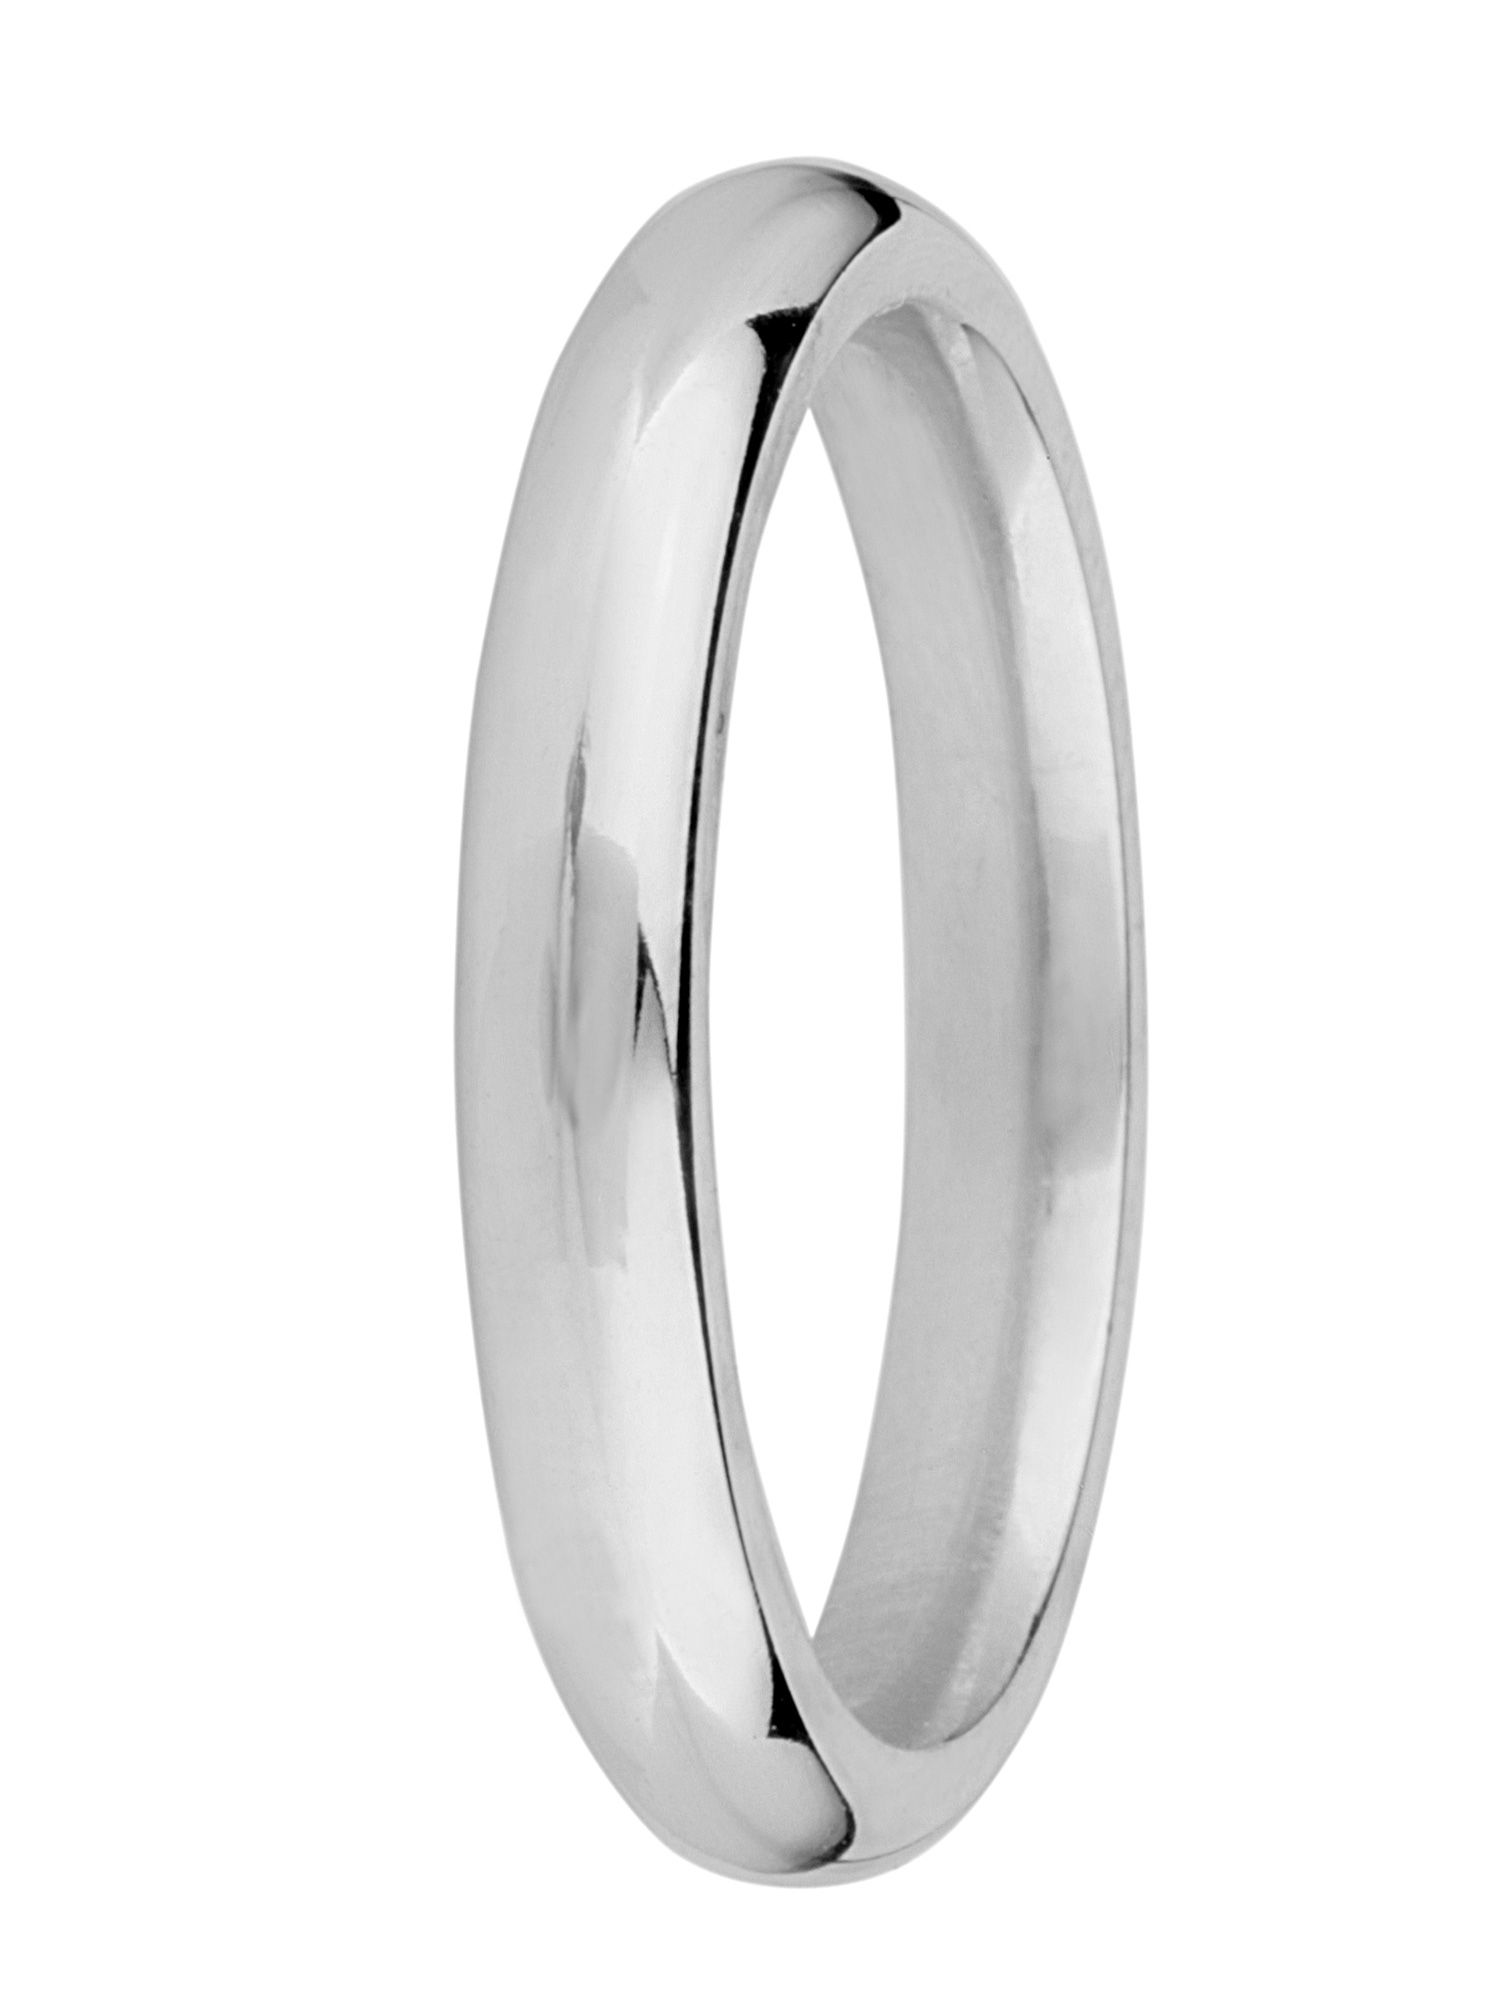 Brides 9ct gold 3mm court wedding ring - White Gold